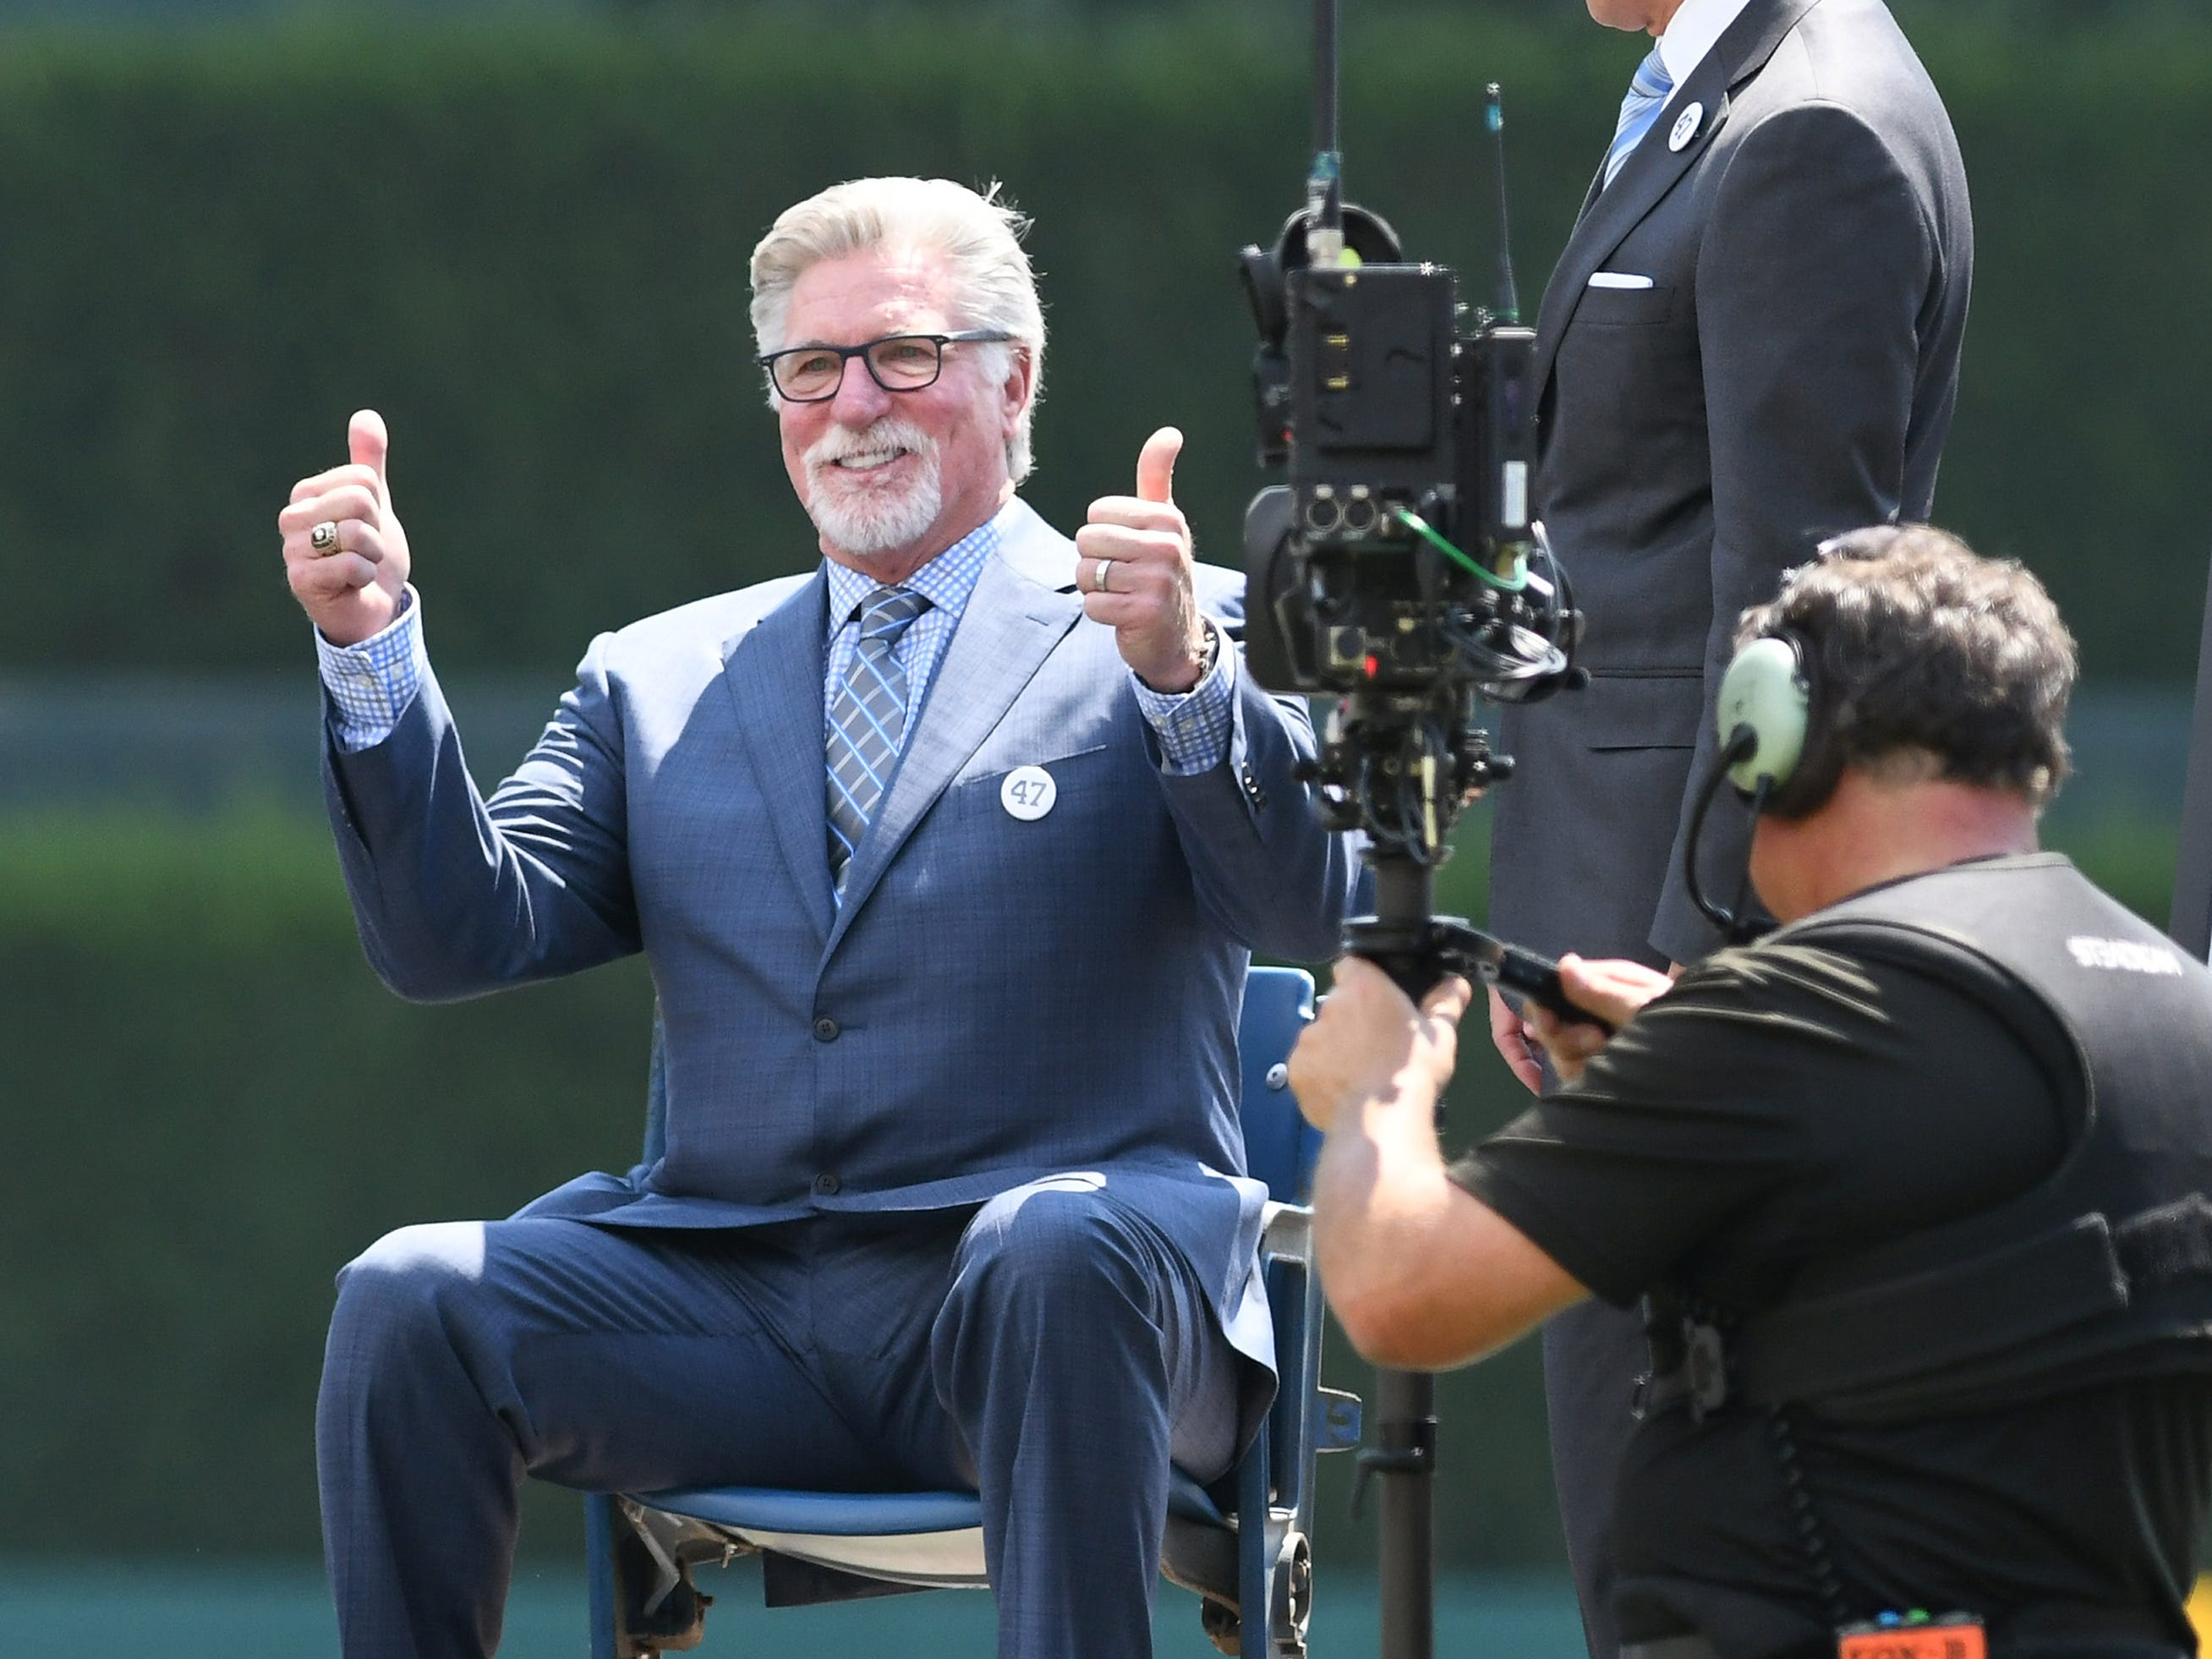 Former Detroit Tigers pitcher Jack Morris gives two thumbs up while sitting in his #47 seat from Tiger Stadium, a gift from Chris Ilitch (right) during a  pregame ceremony to retire the Morris' #47 jersey on August 12, 2018 at Comerica Park in Detroit. Morris and 1984 World Series Tigers teammate Alan Trammell were inducted into the Major League Baseball Hall of Fame in 2018.